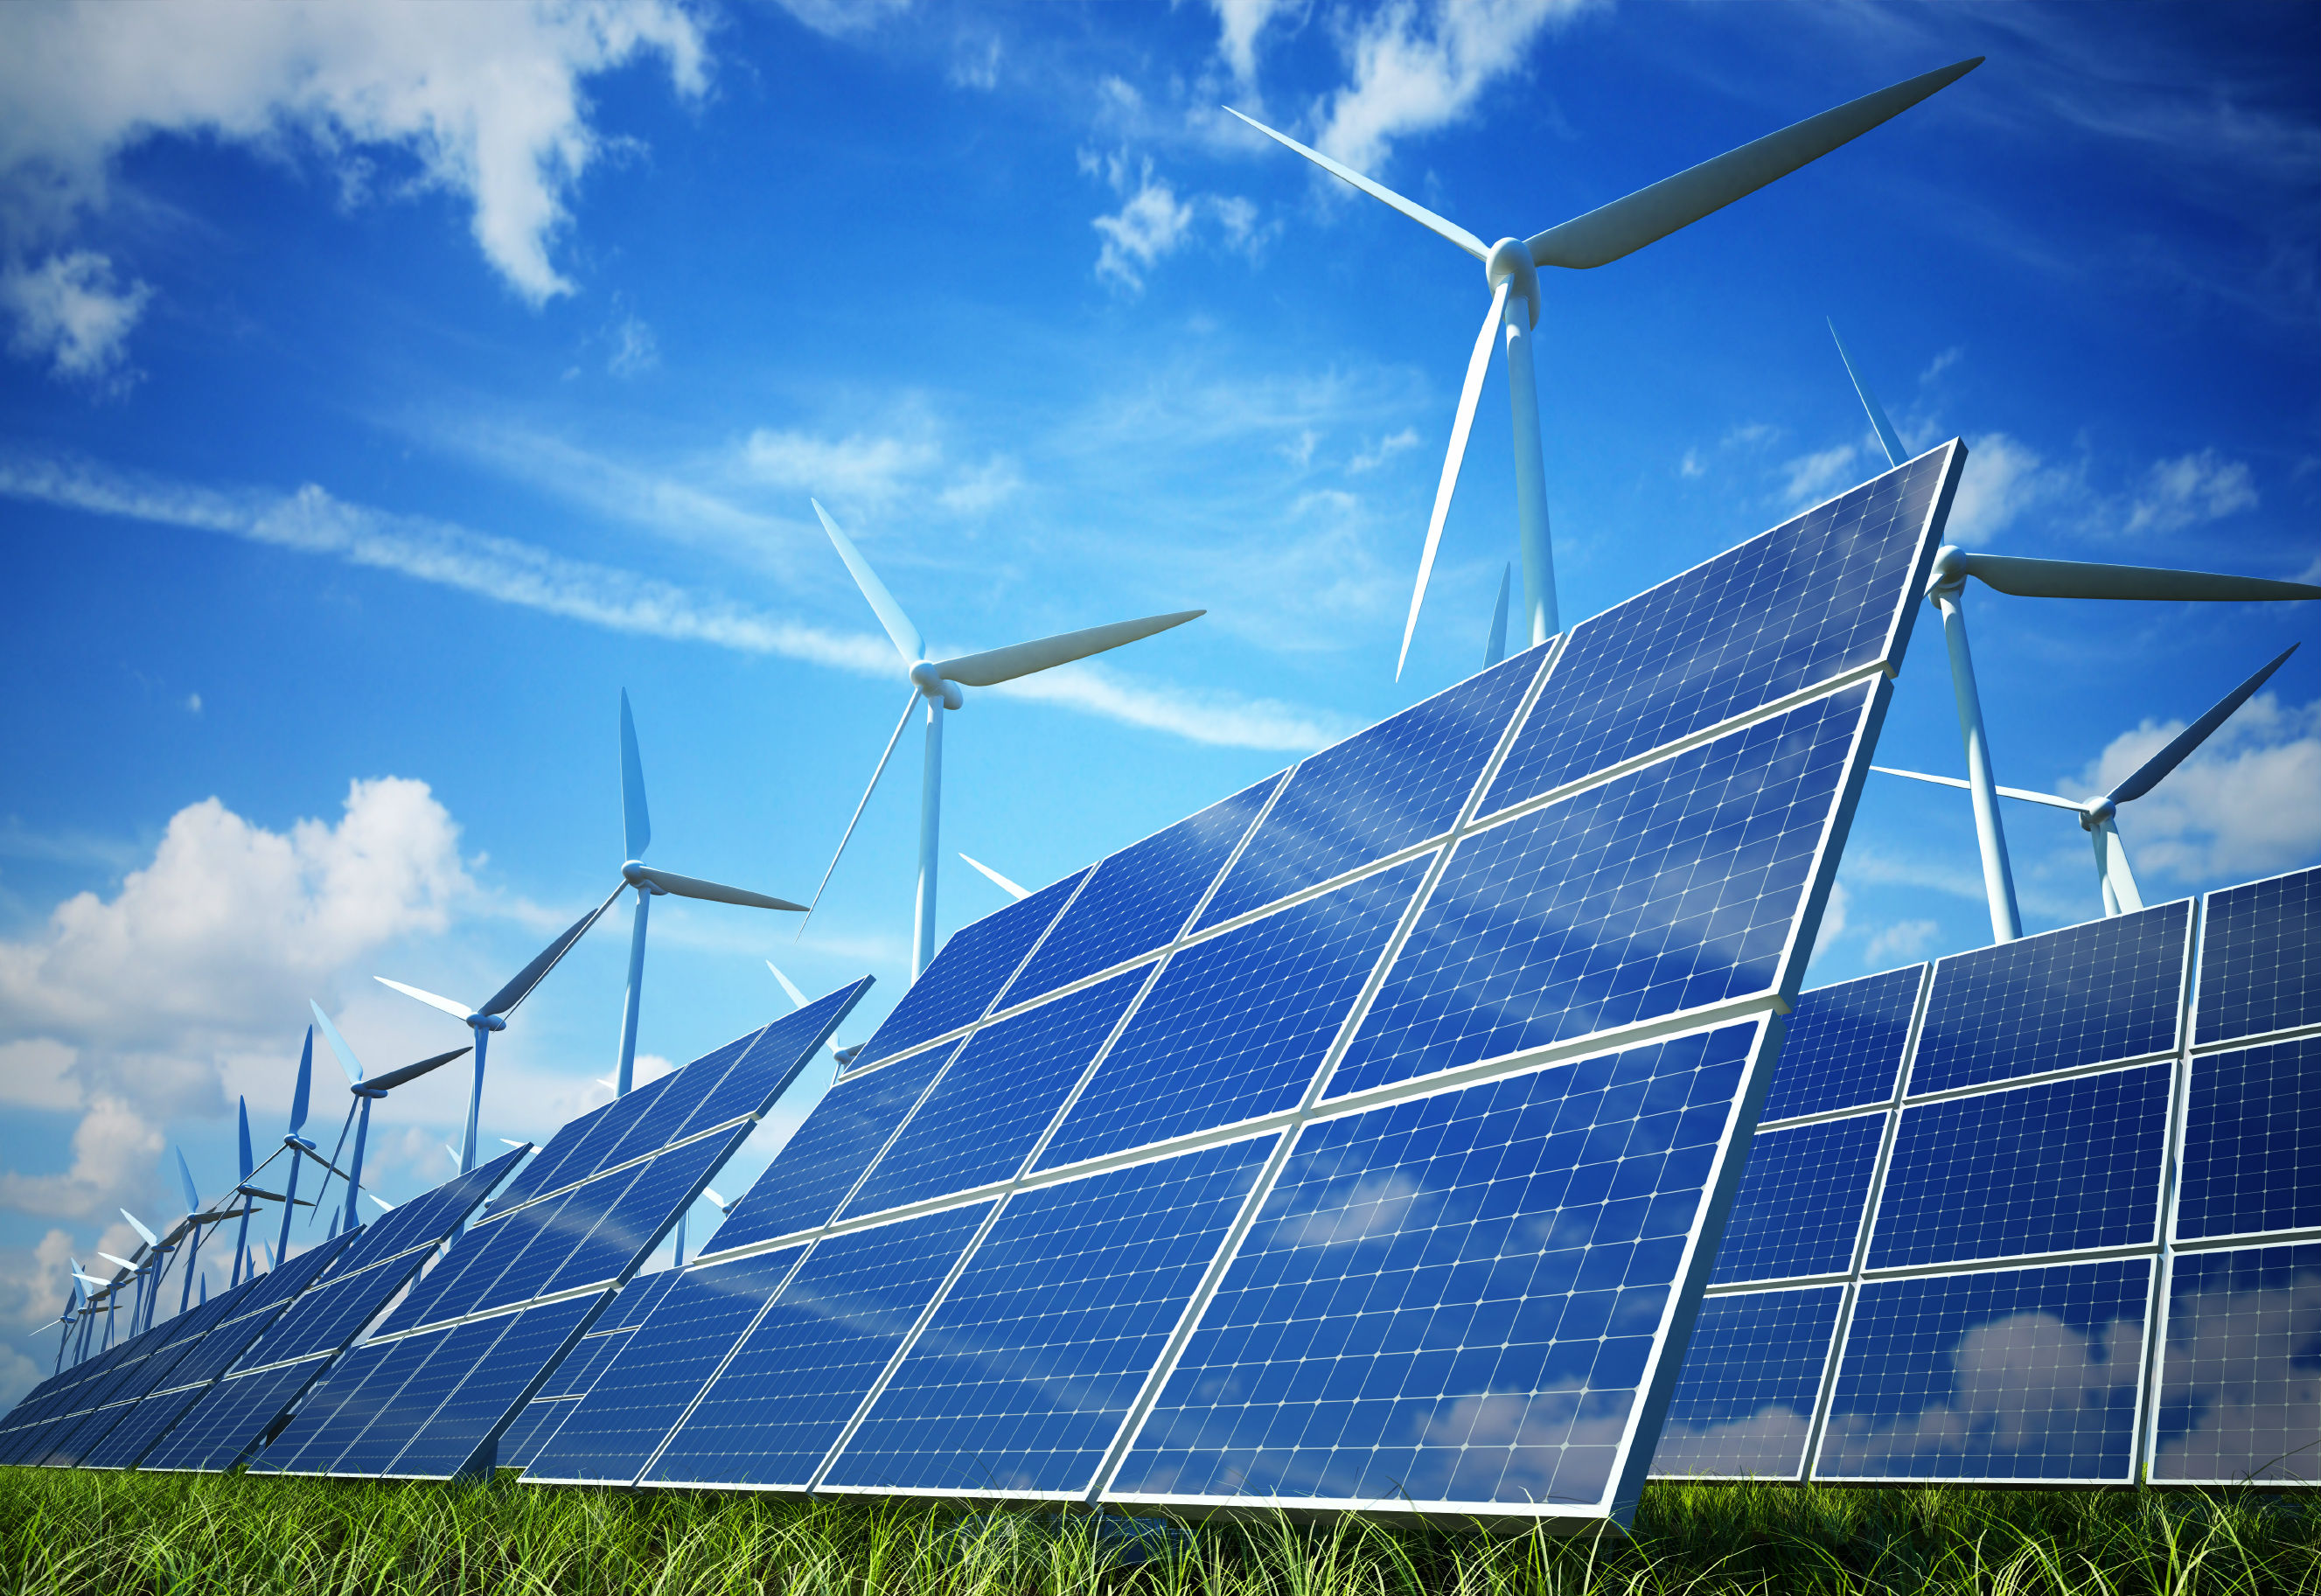 2016-International-Conference-on-Power-and-Renewable-Energy-ICPRE-2016-384624706